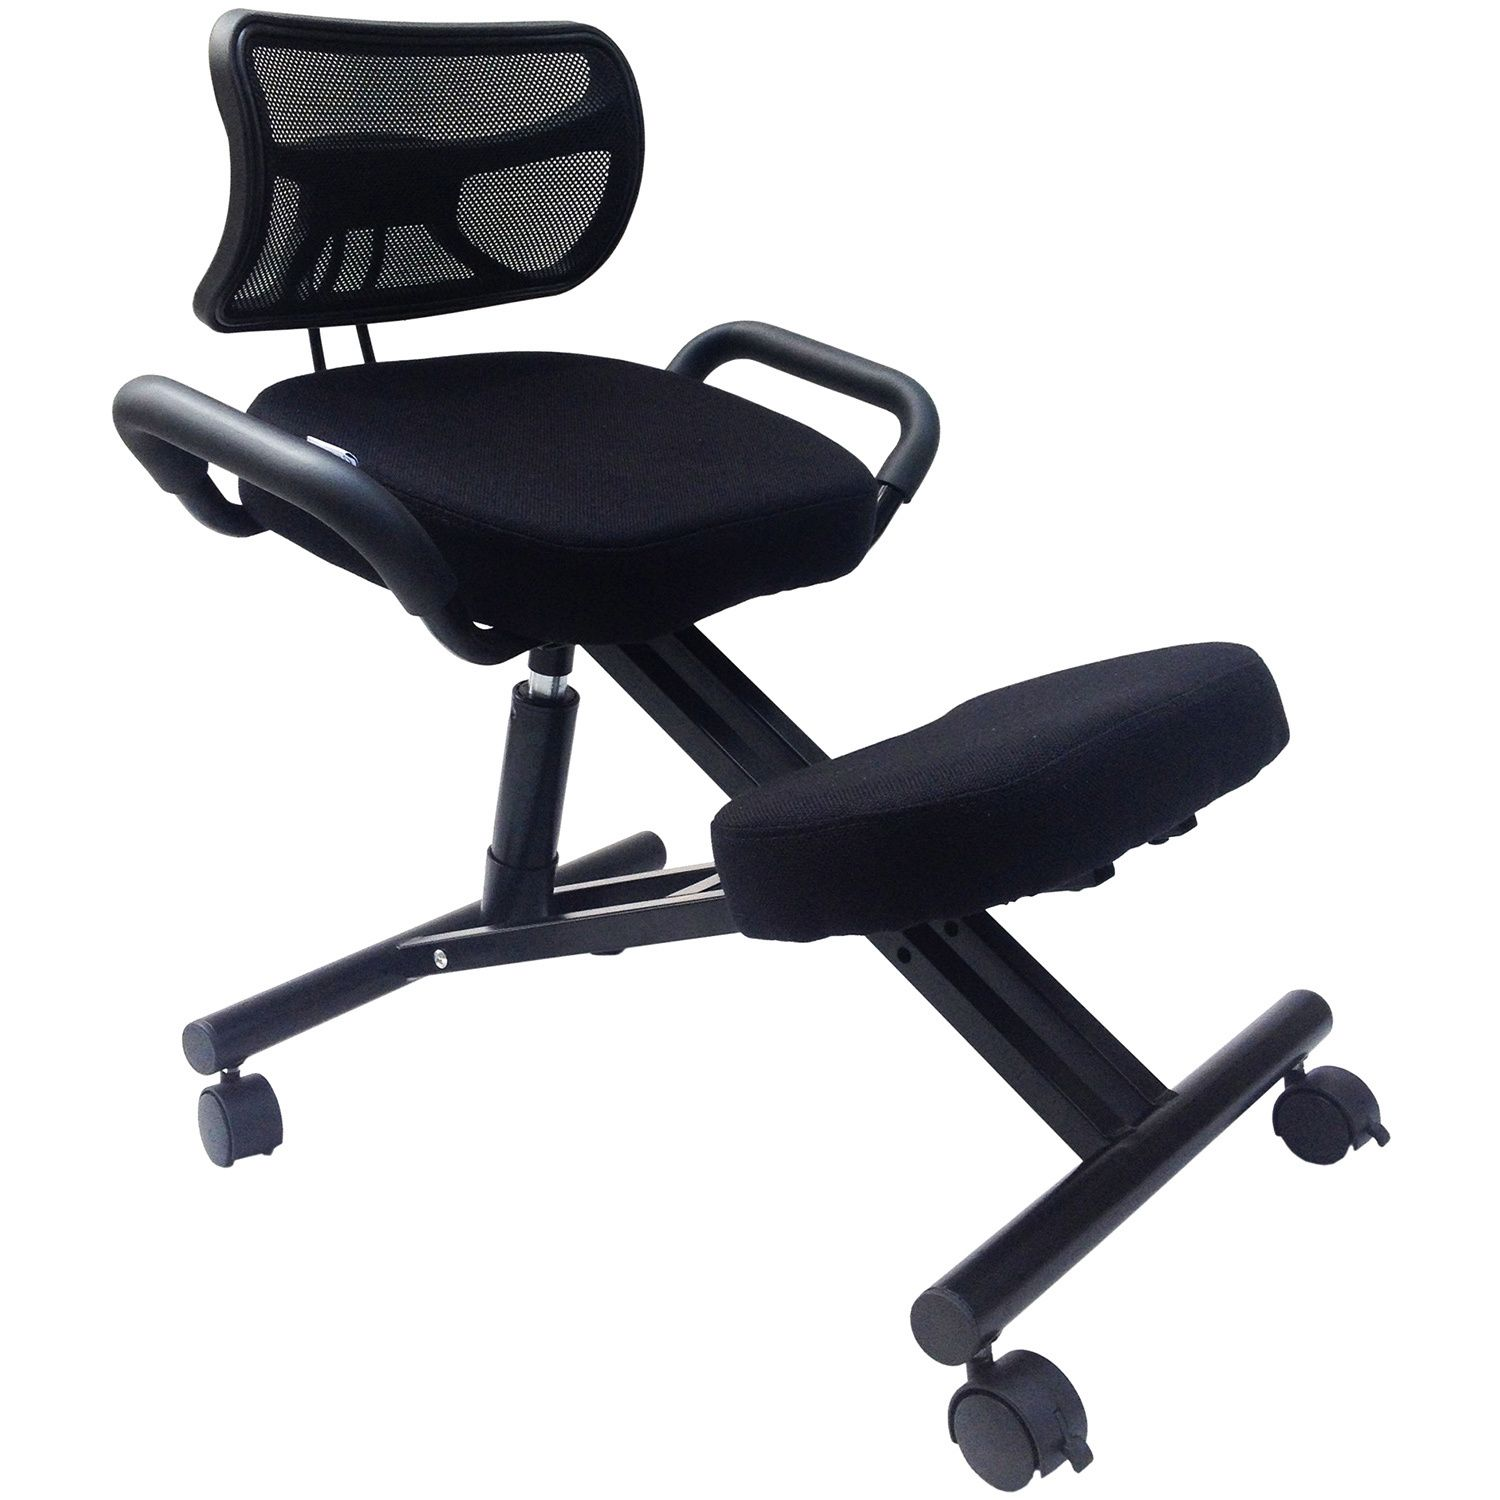 Ergonomic office chair kneeling posture - The Sc 300b Ergonomic Kneeling Chair Is Built To Support And Enhance Your Posture